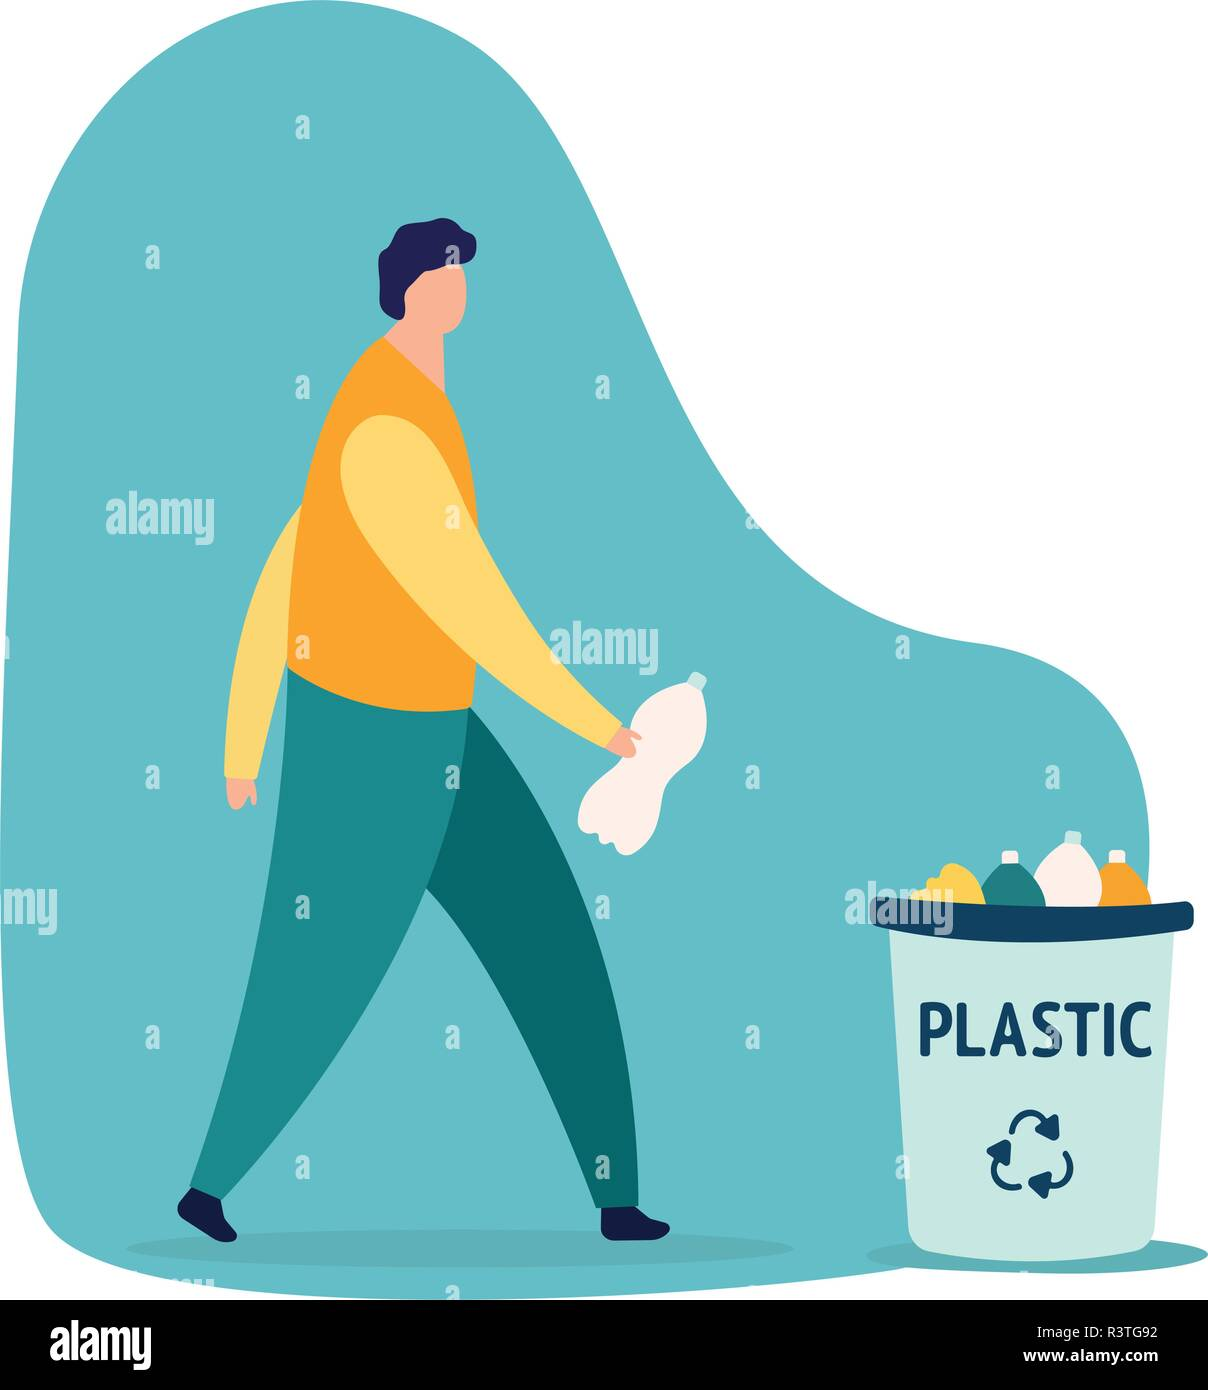 Caucasian person man throwing a plastic bottle waste in garbage bin. Isolated flat vector trash illustration on white background. Rubish recycling concept. - Stock Image